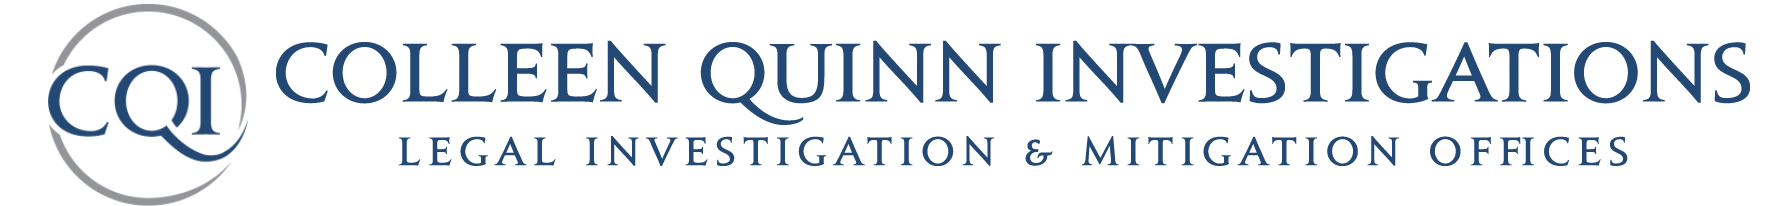 Colleen Quinns Investigations Logo